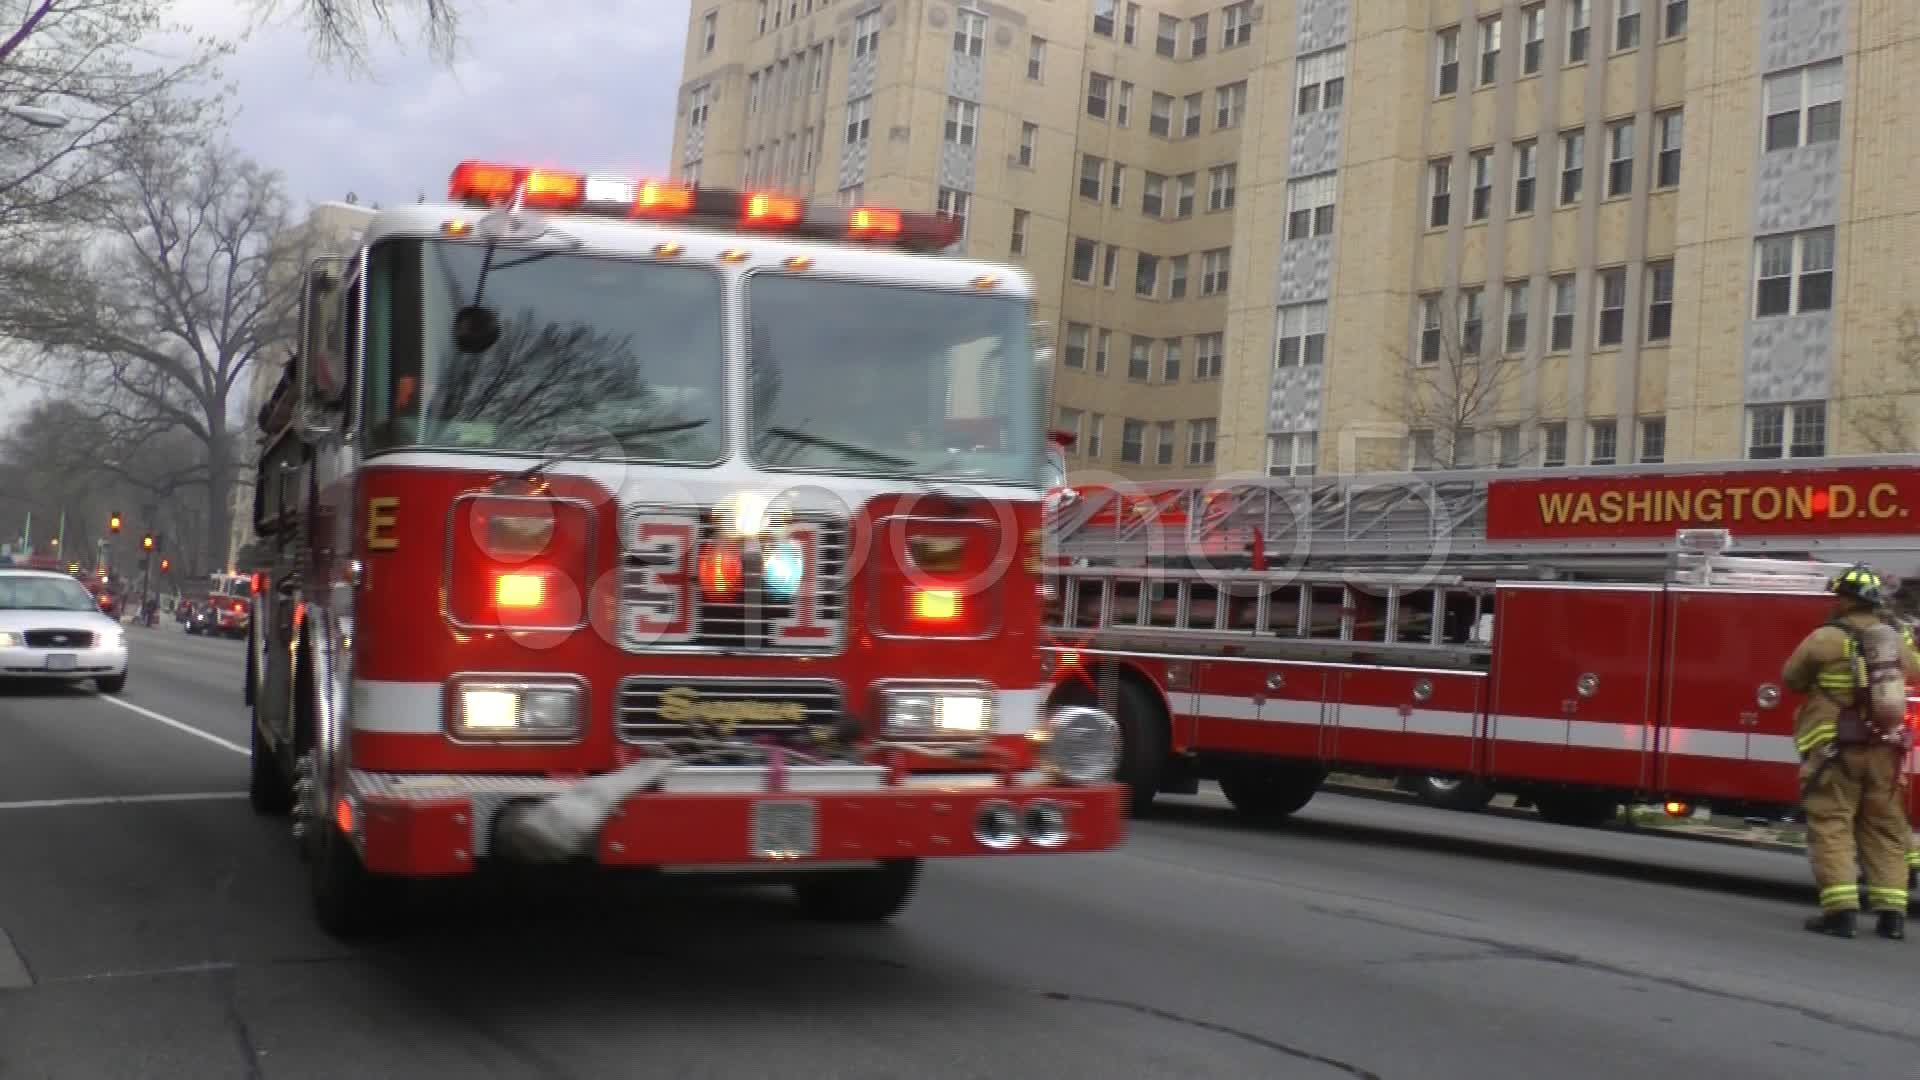 Fire Engine Arrives Dc Stock Footage Ad Arrives Engine Fire Footage Fire Engine Engineering Fire